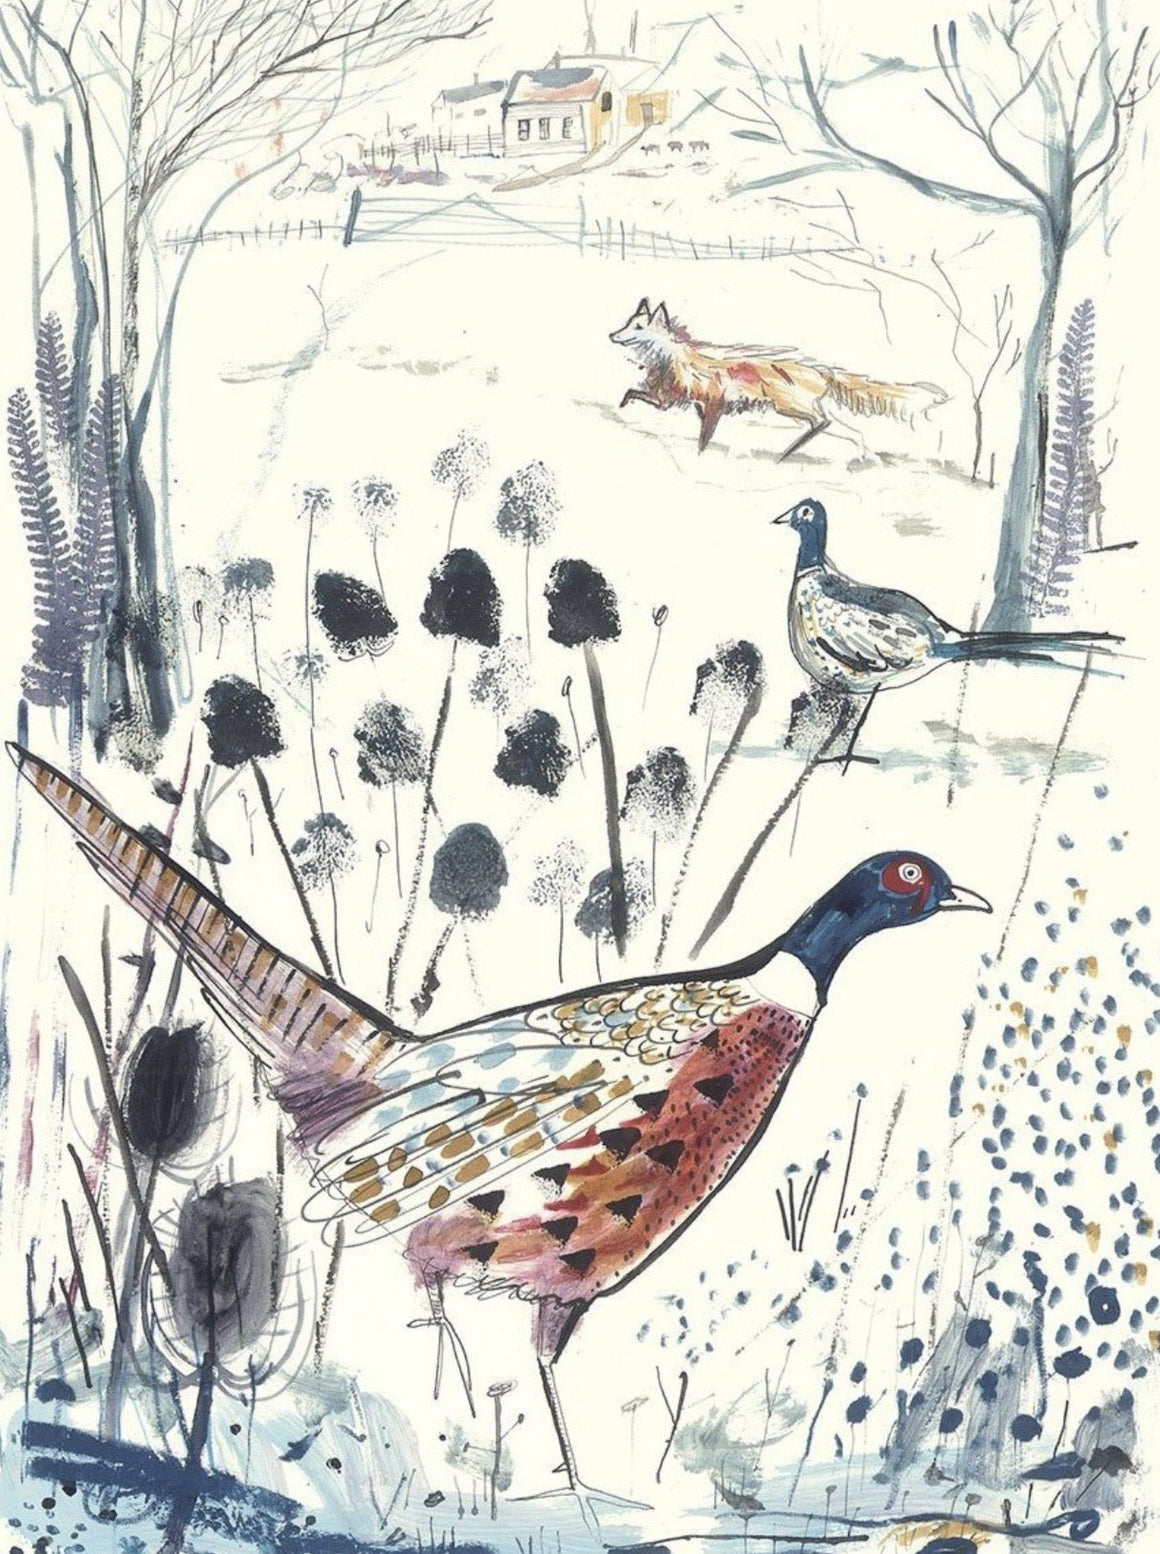 THE PHEASANT & THE FOX